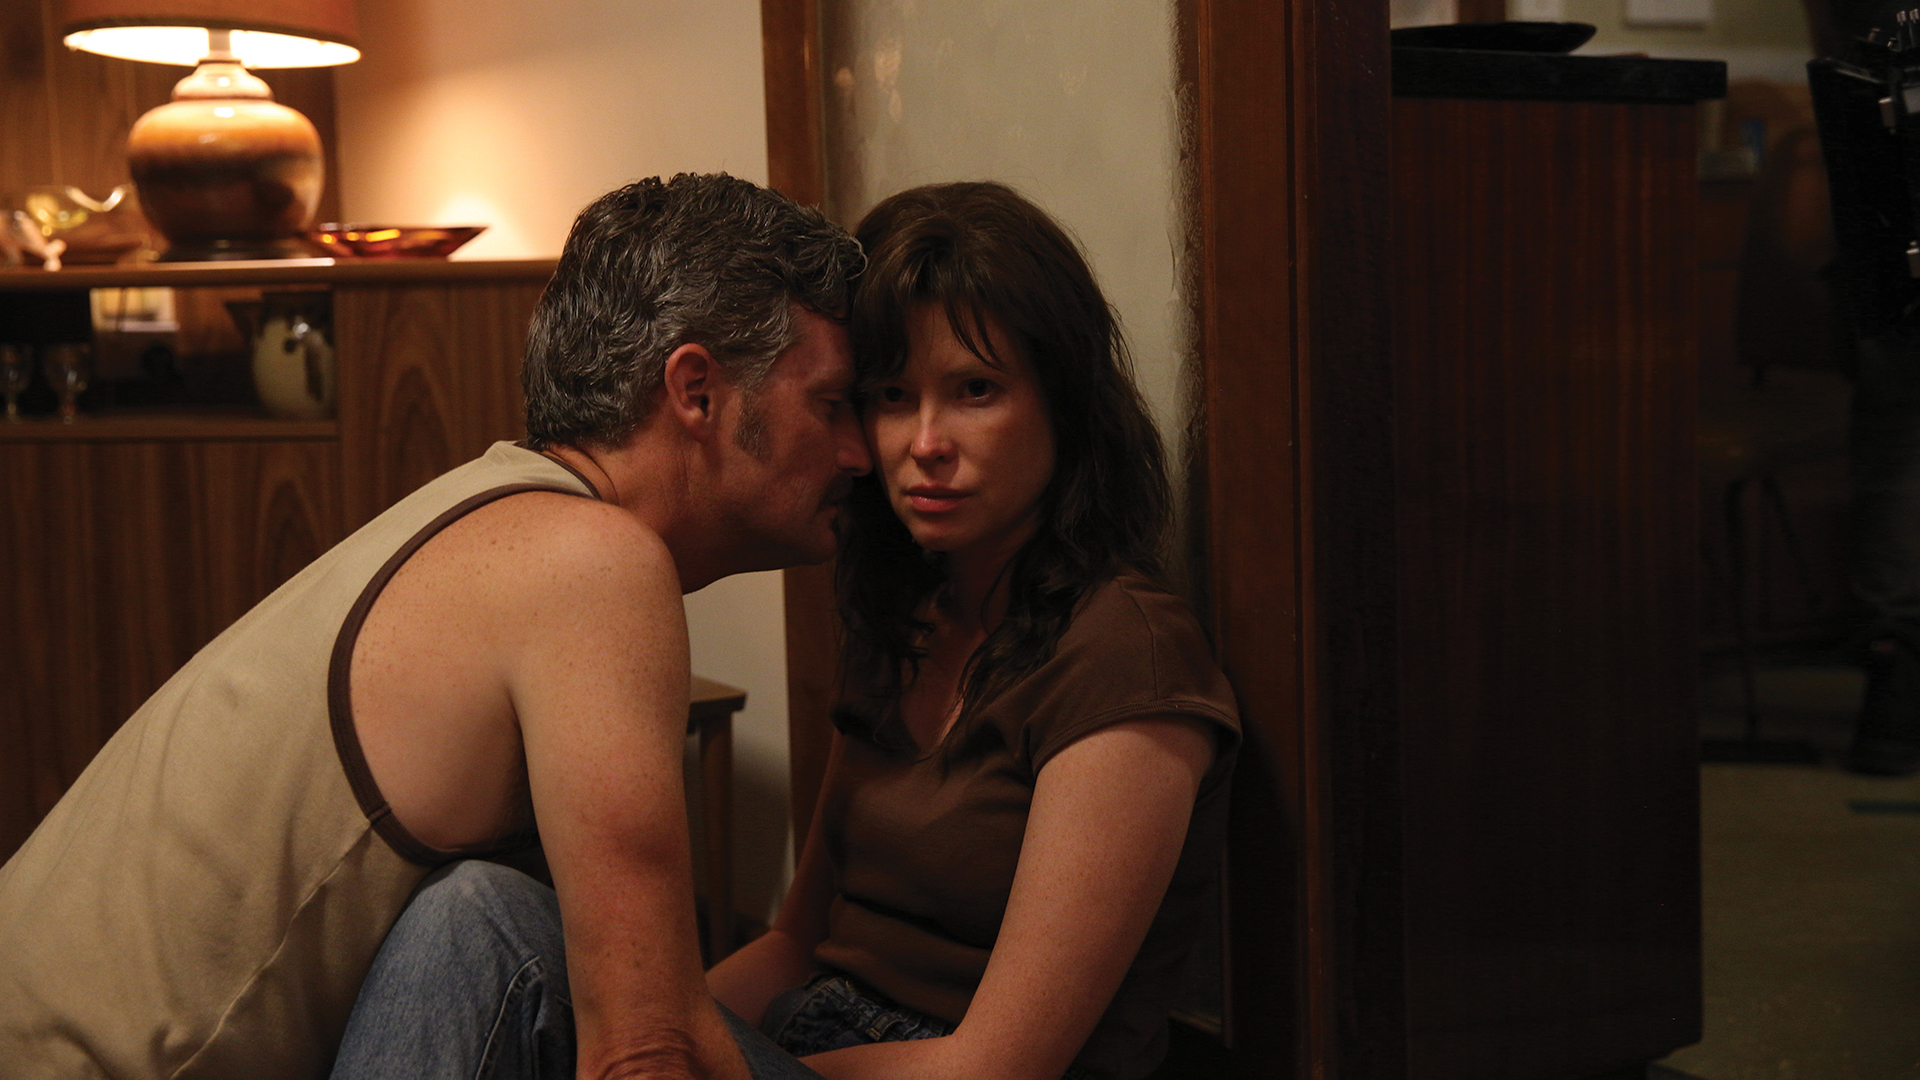 'Hounds of Love' is a compelling, impossibly bleak horror experience